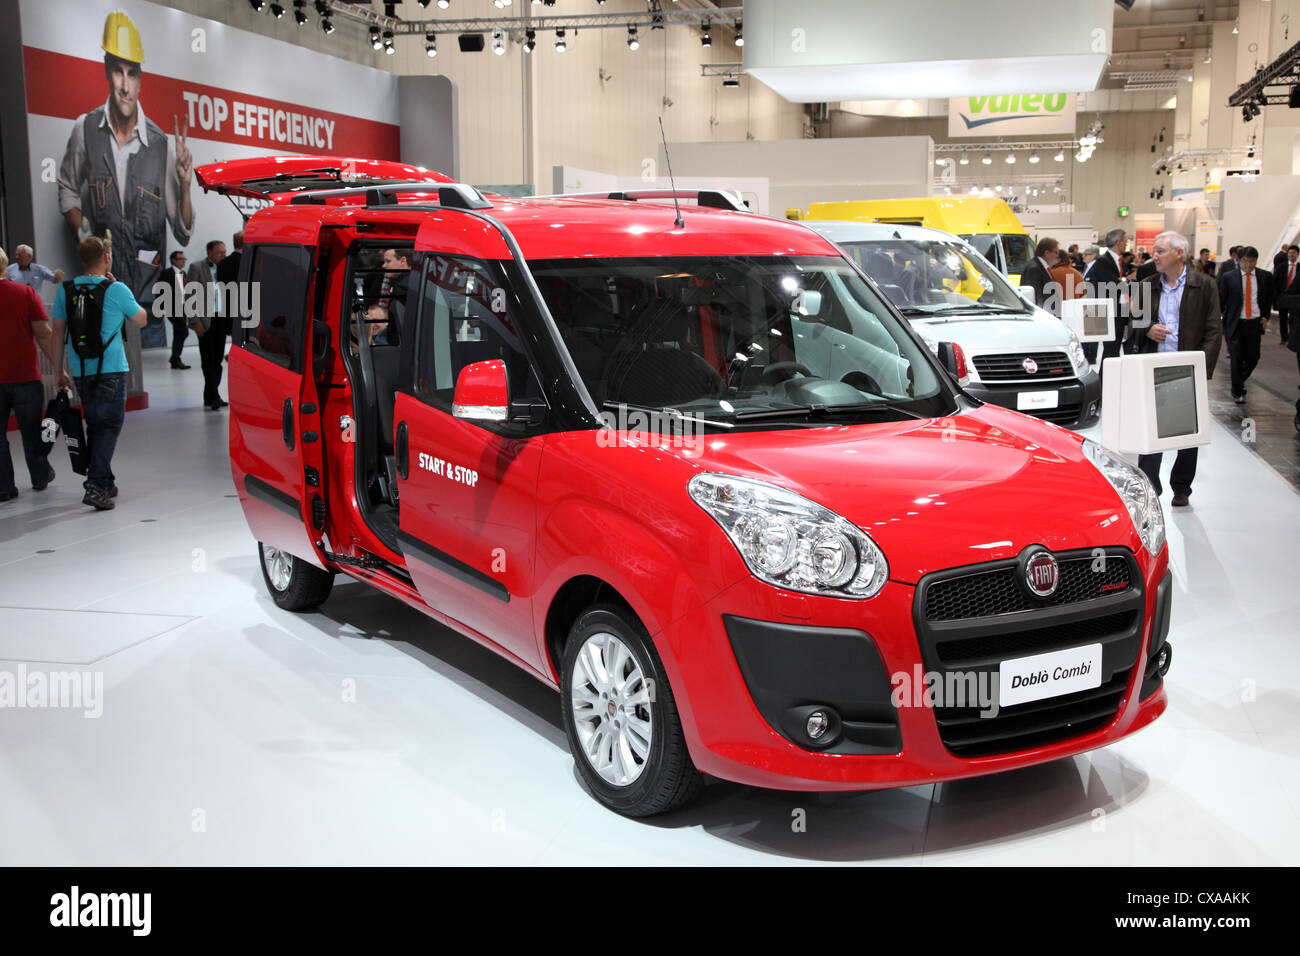 101ef2fc4a New Fiat Doblo Van at the International Motor Show for Commercial Vehicles  - Stock Image